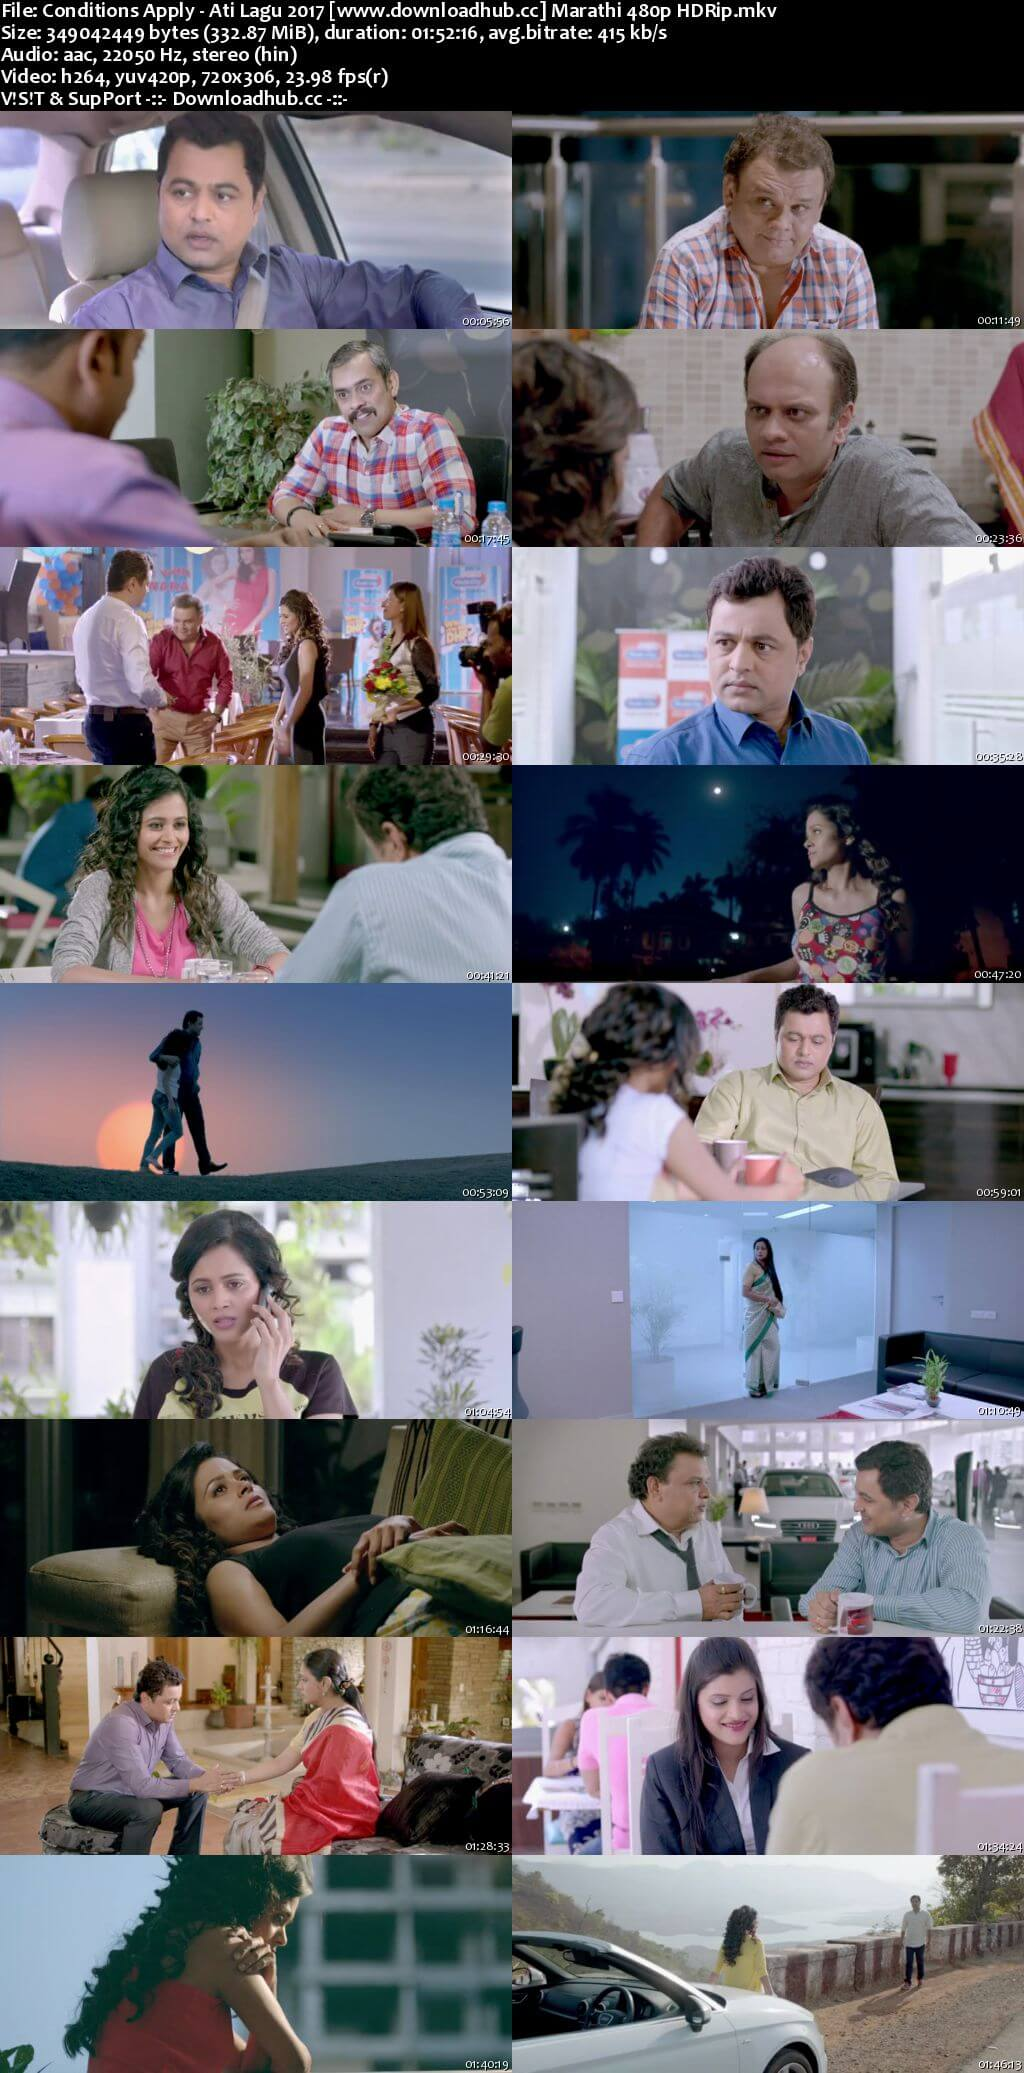 Conditions Apply Ati Lagu 2017 Marathi 300MB HDRip 480p ESubs